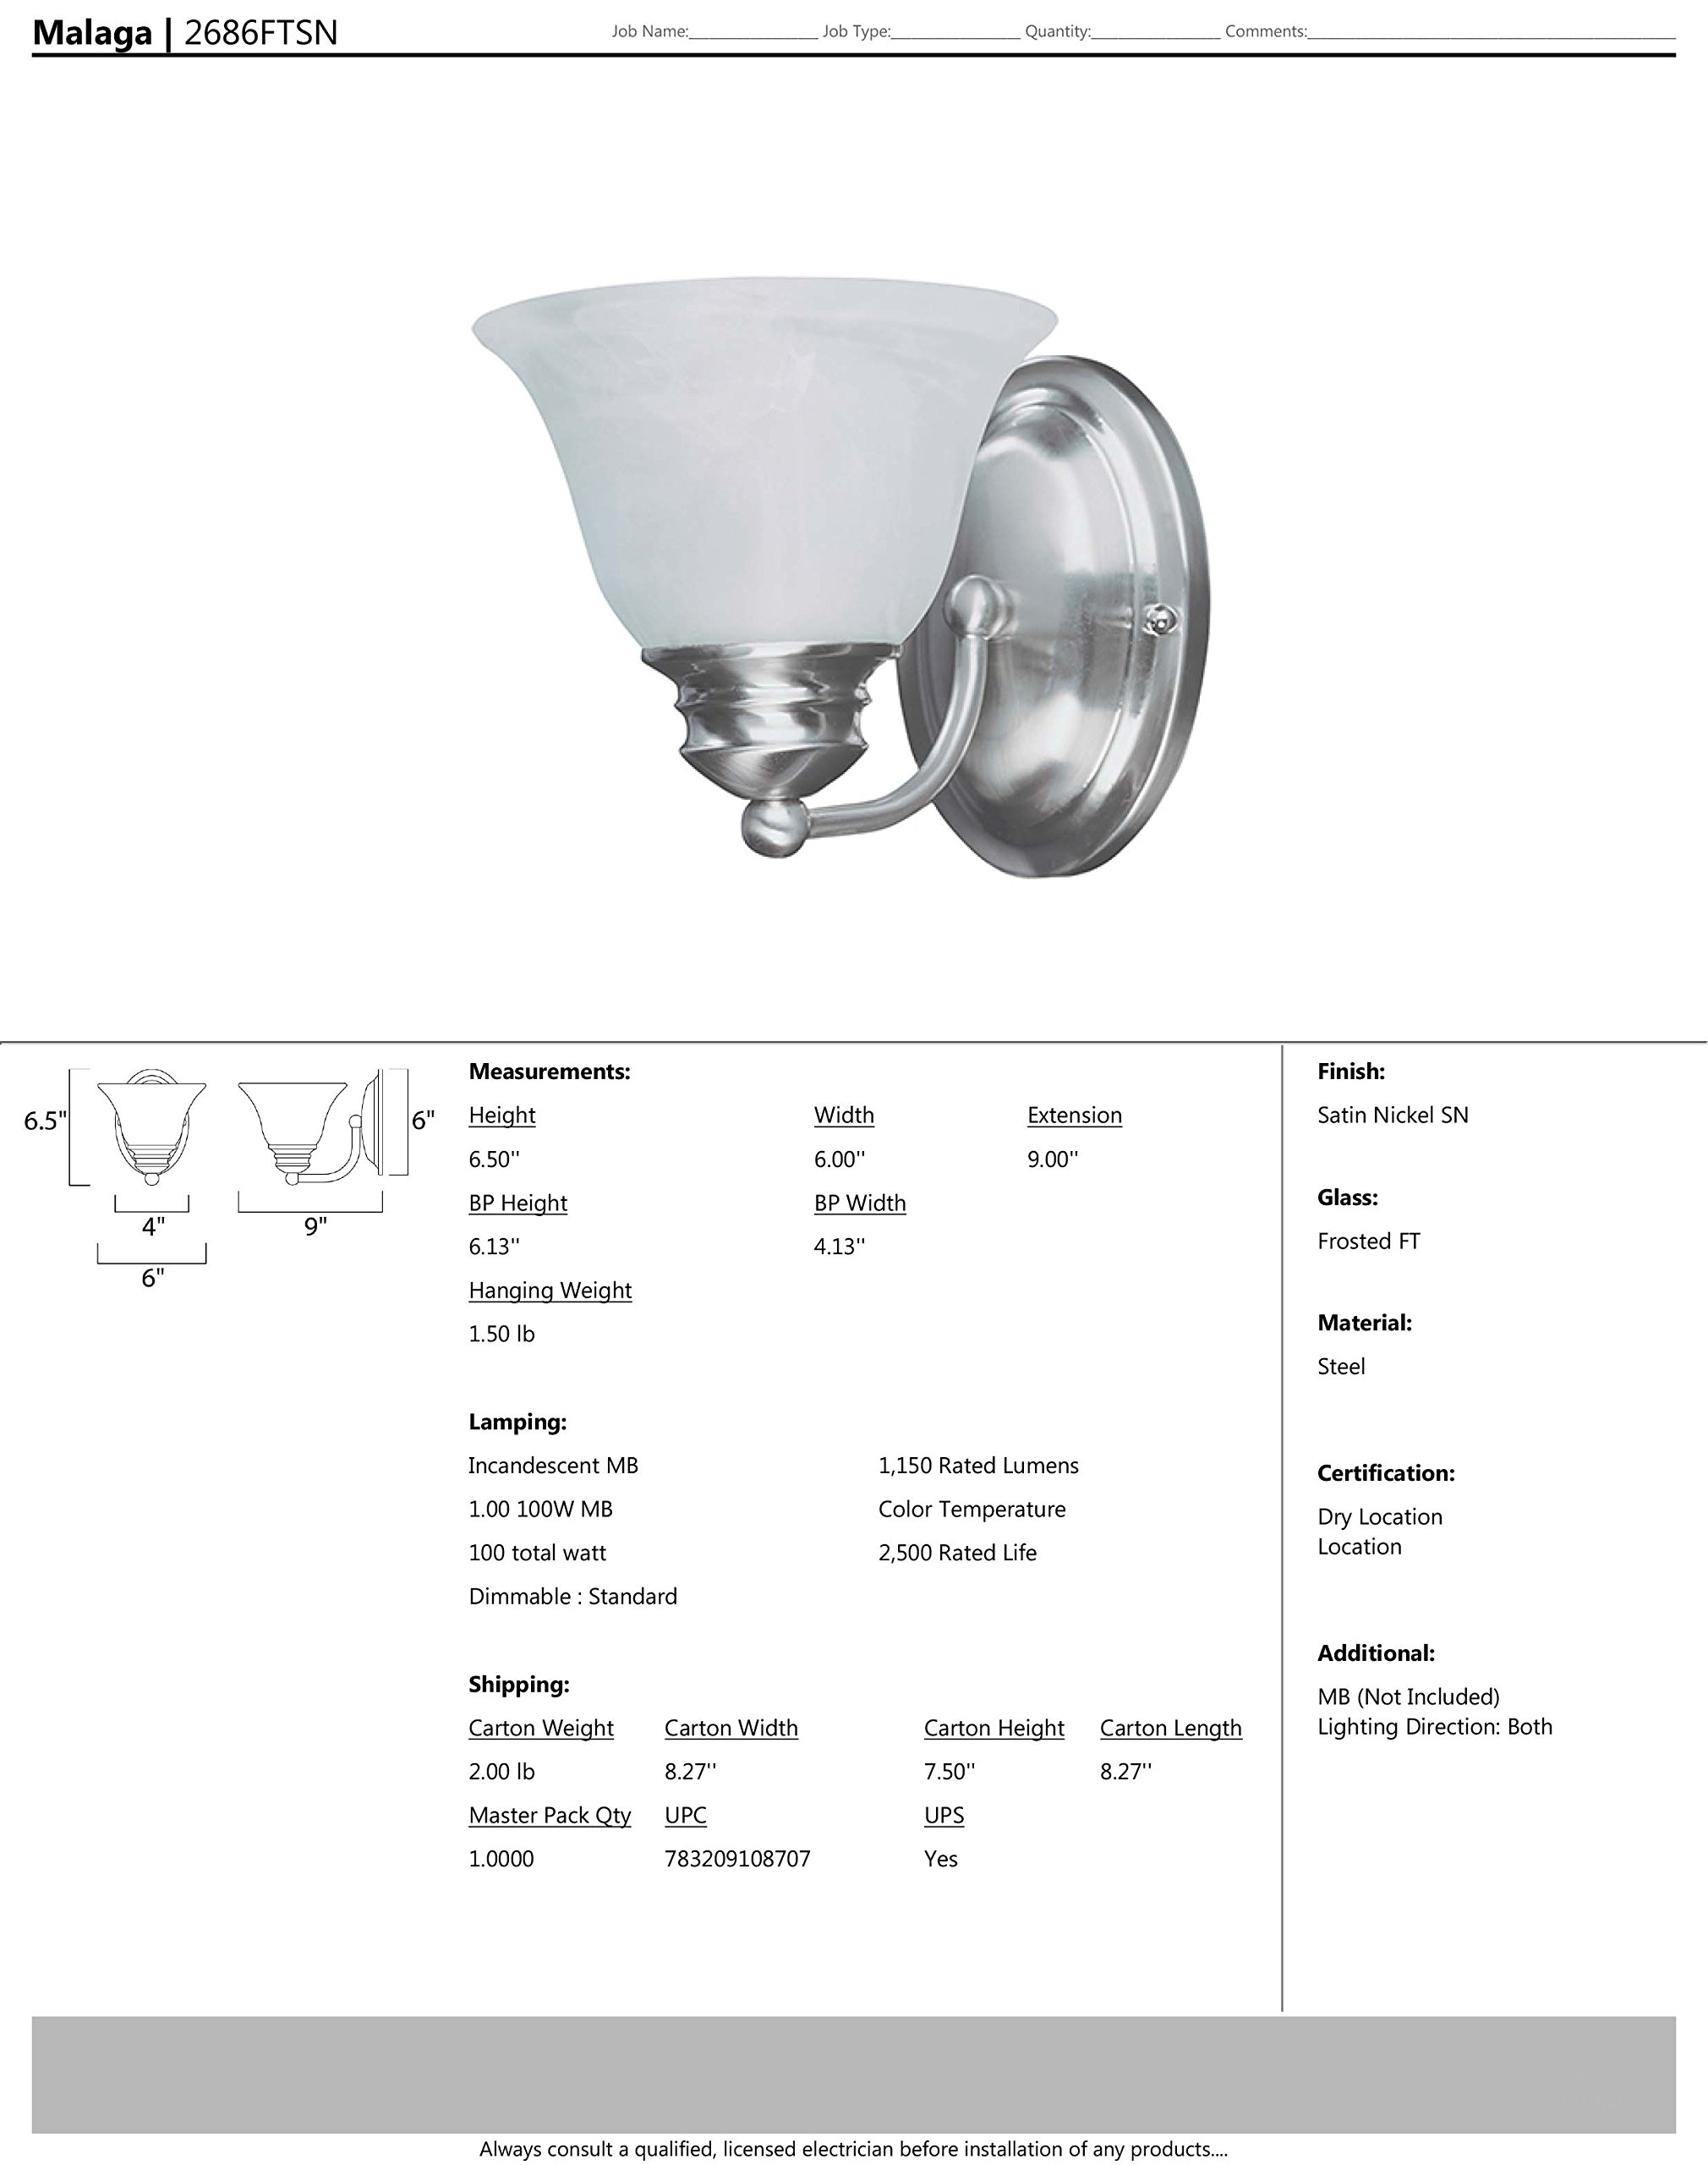 Maxim 2686FTSN Malaga 1-Light Wall Sconce Bath Vanity, Satin Nickel Finish, Frosted Glass, MB Incandescent Incandescent Bulb , 100W Max., Dry Safety Rating, Standard Dimmable, Glass Shade Material, 4600 Rated Lumens by Maxim Lighting (Image #2)